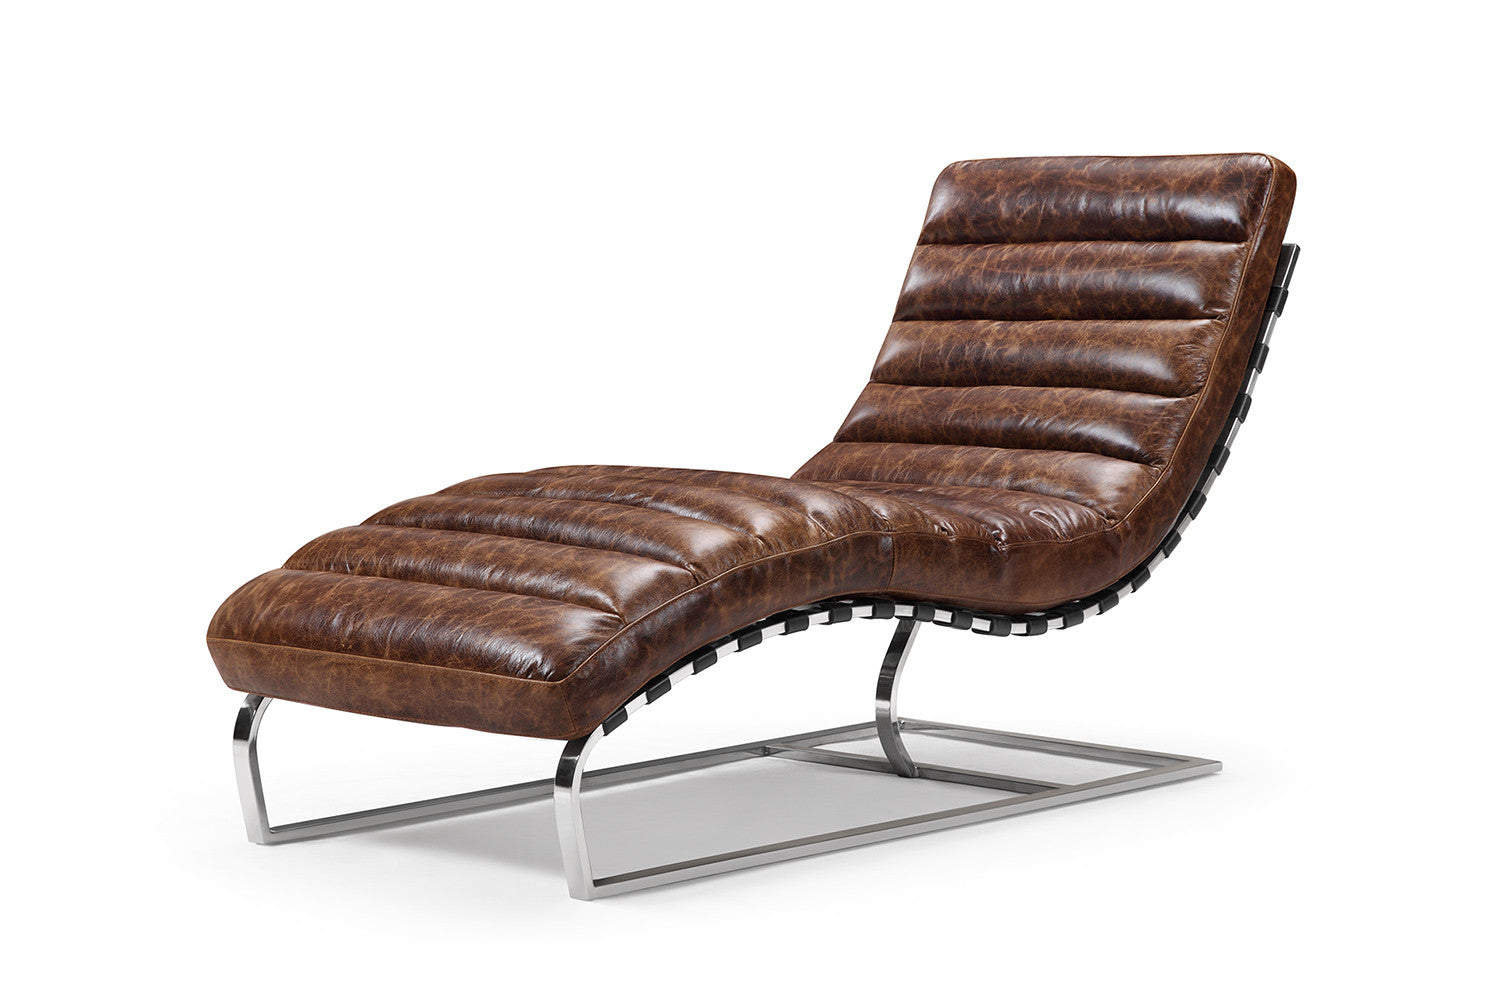 The leather chaise lounge rose and moore for Chaise longue lockheed lounge